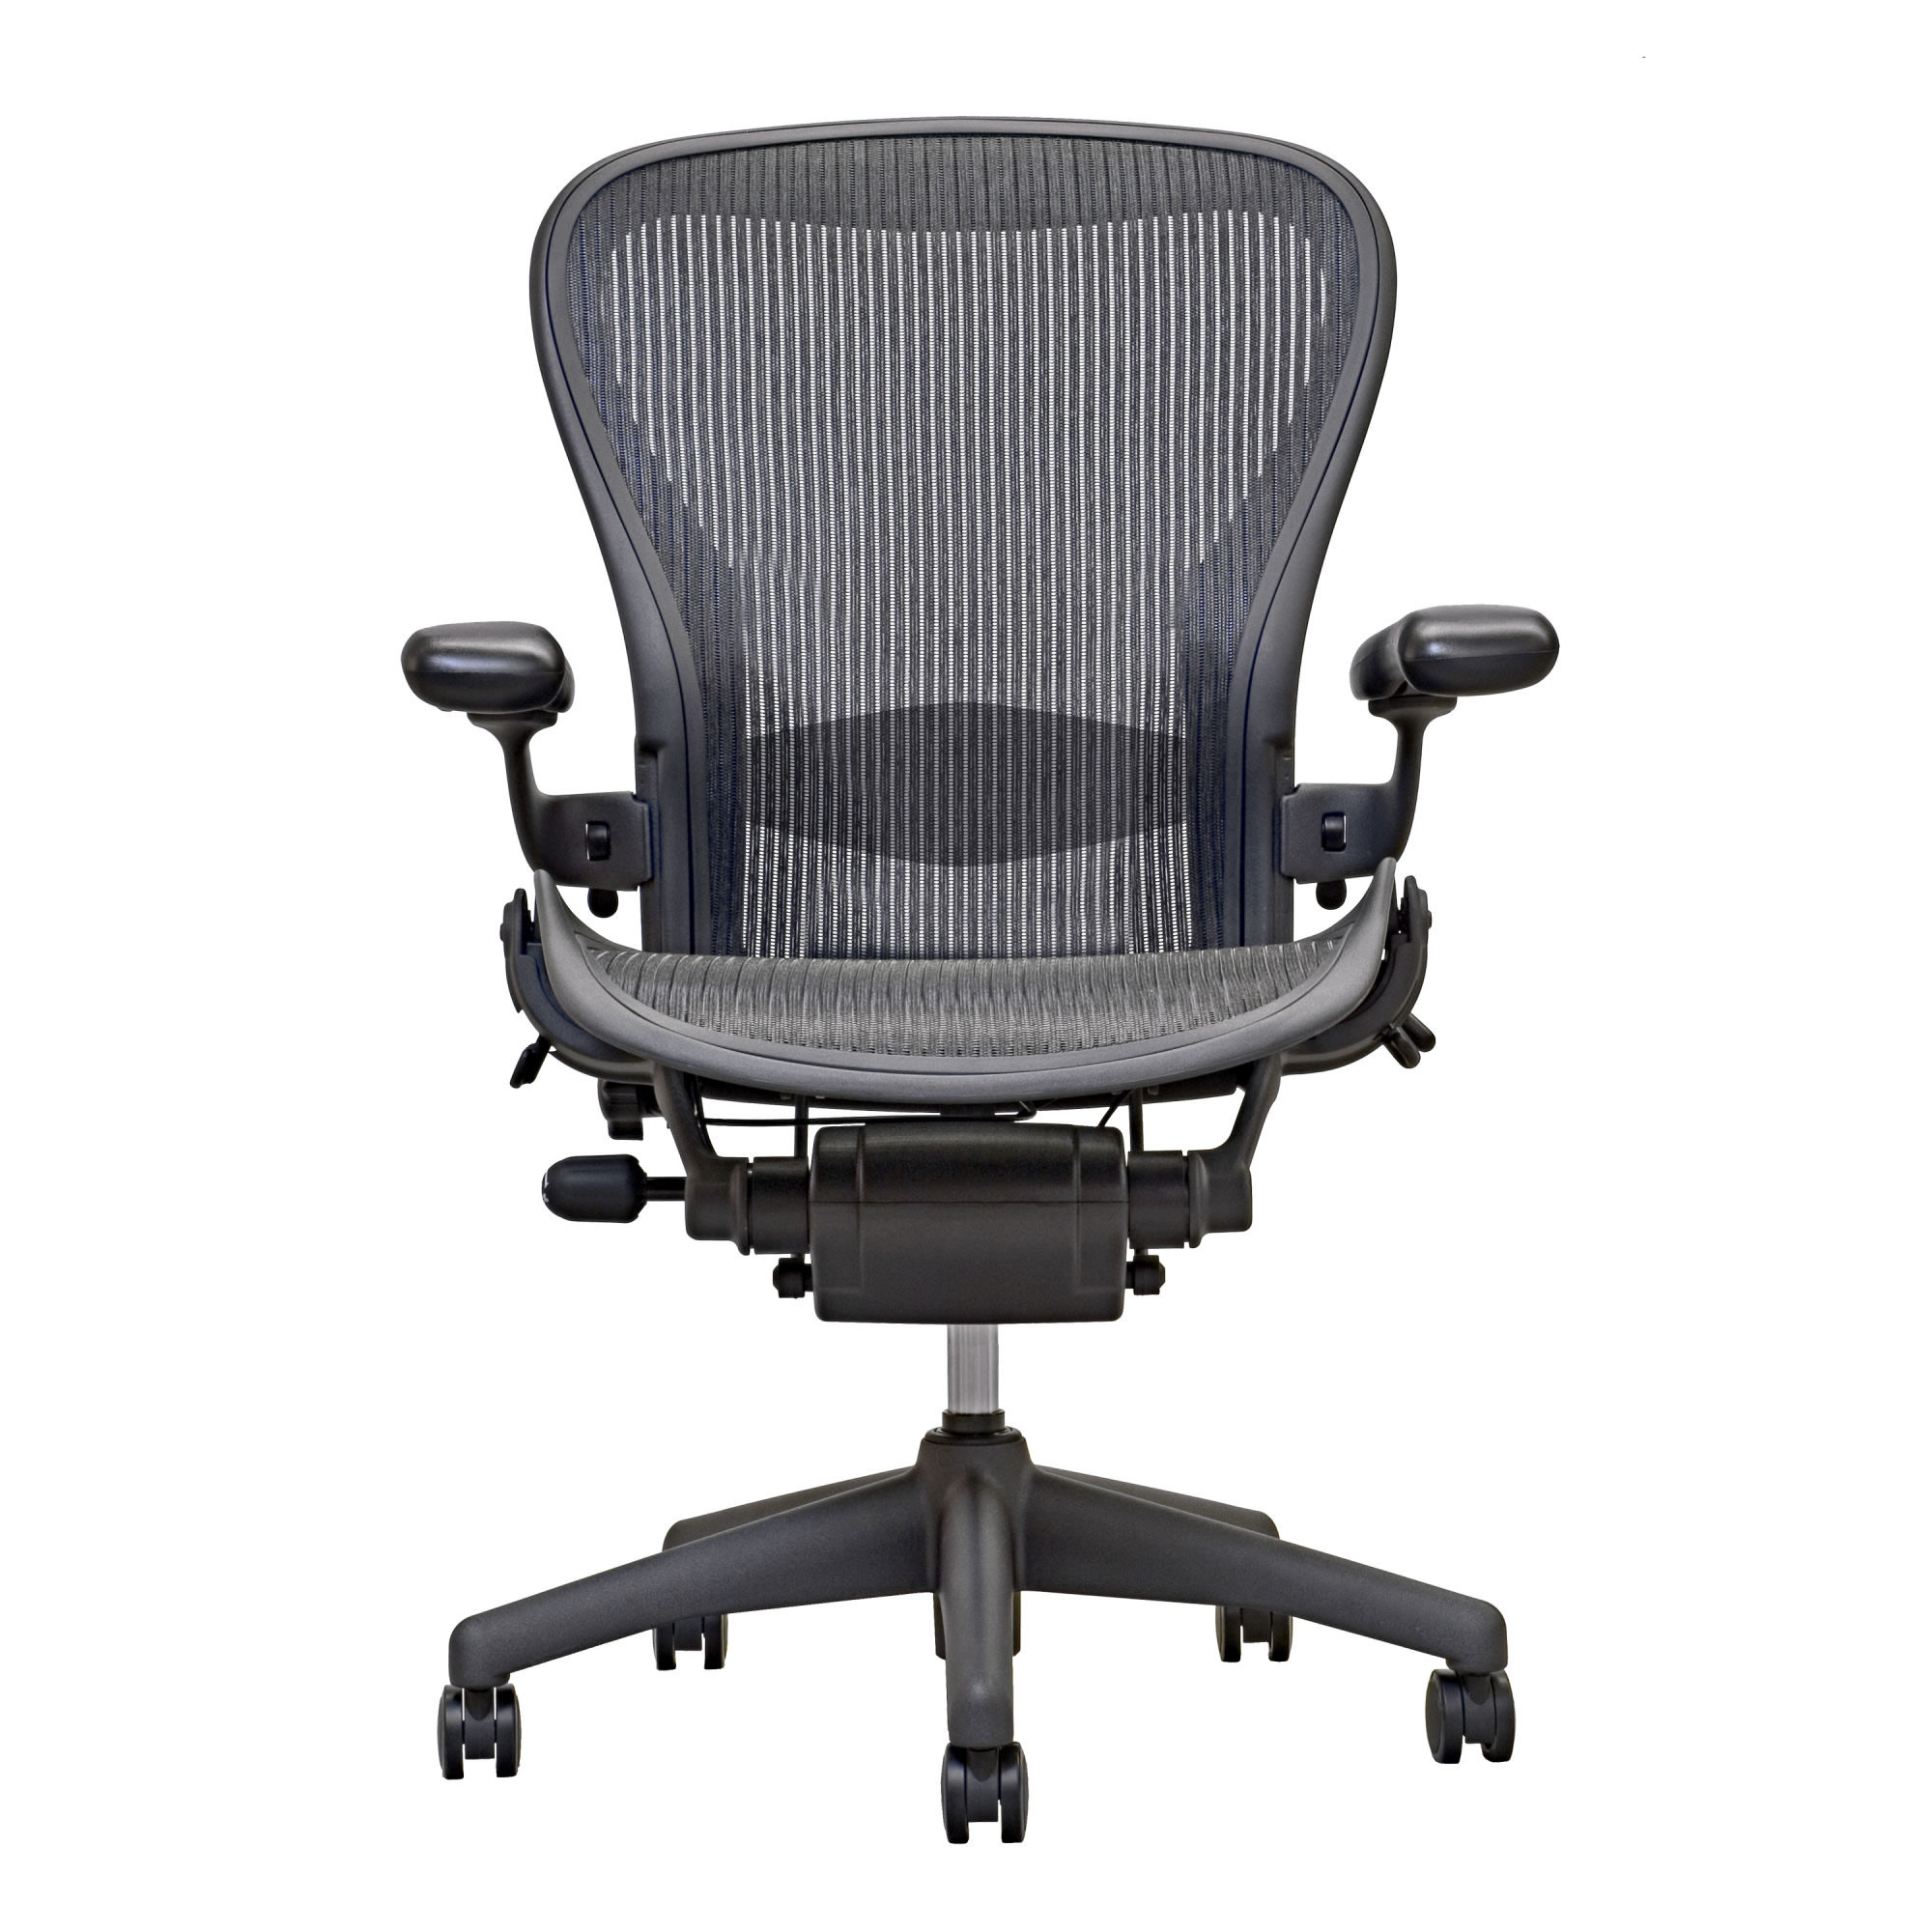 aeron chair by herman miller. Black Bedroom Furniture Sets. Home Design Ideas